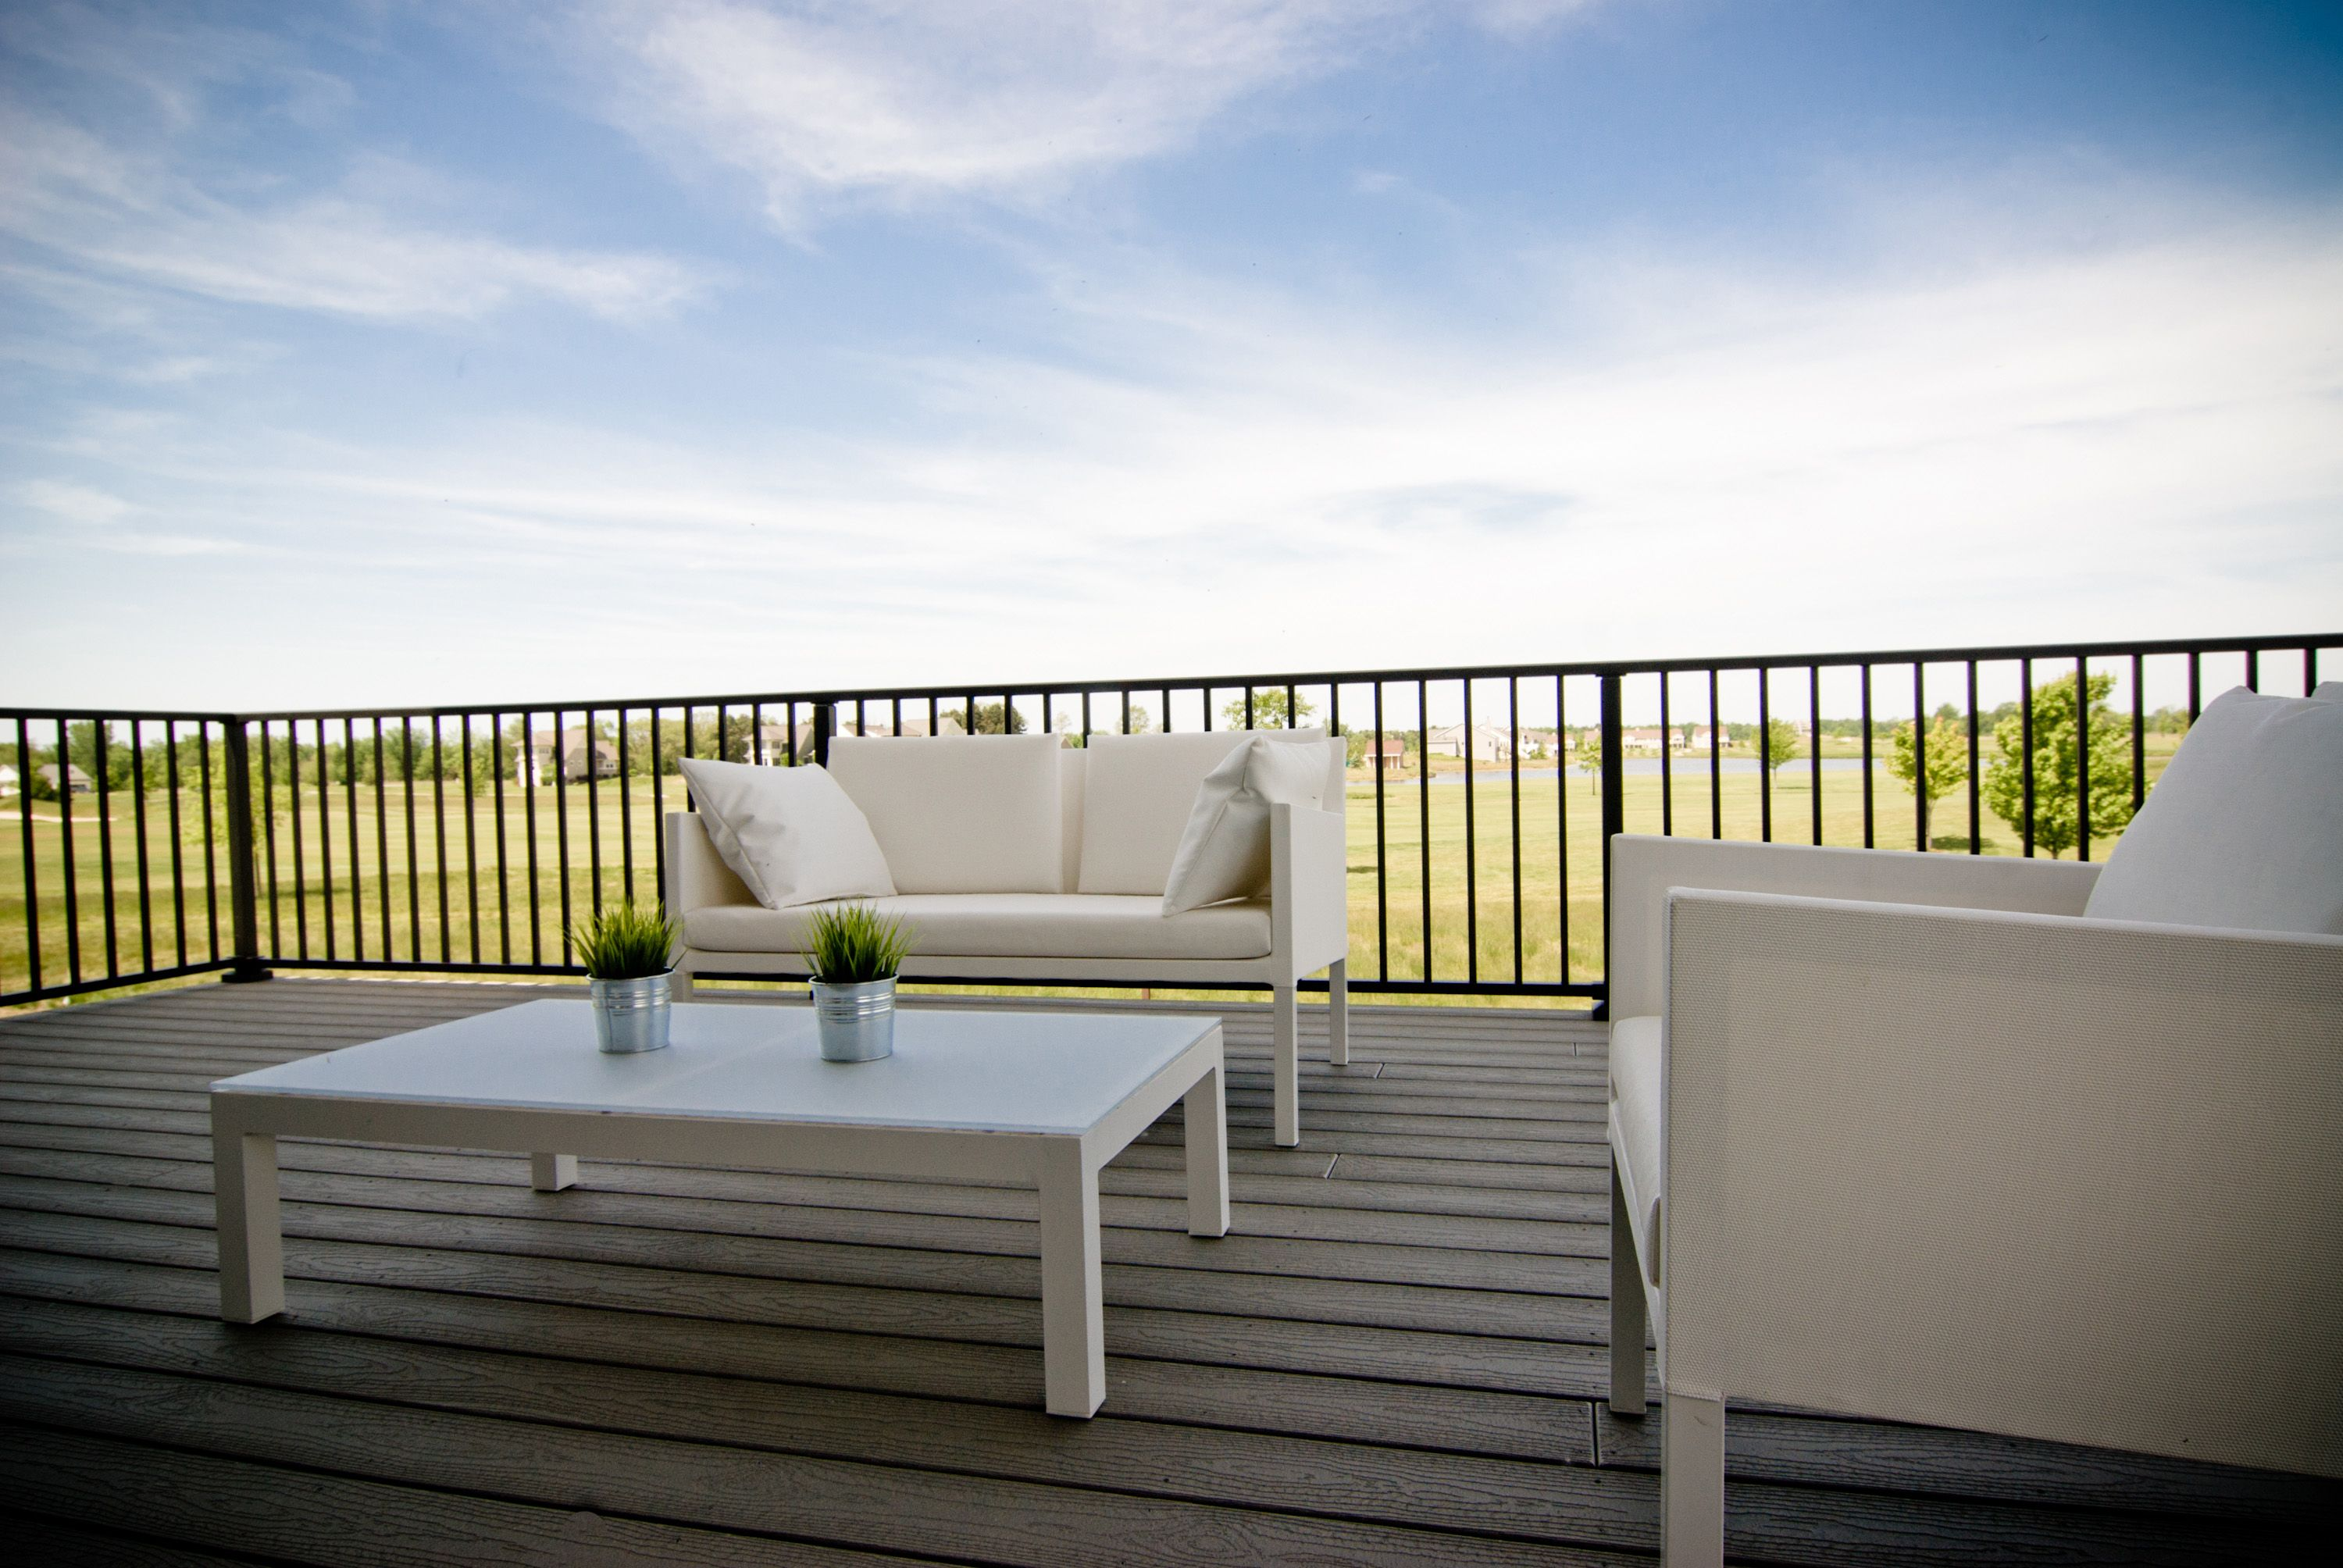 Thinking about golf relaxing instead troxel custom homes